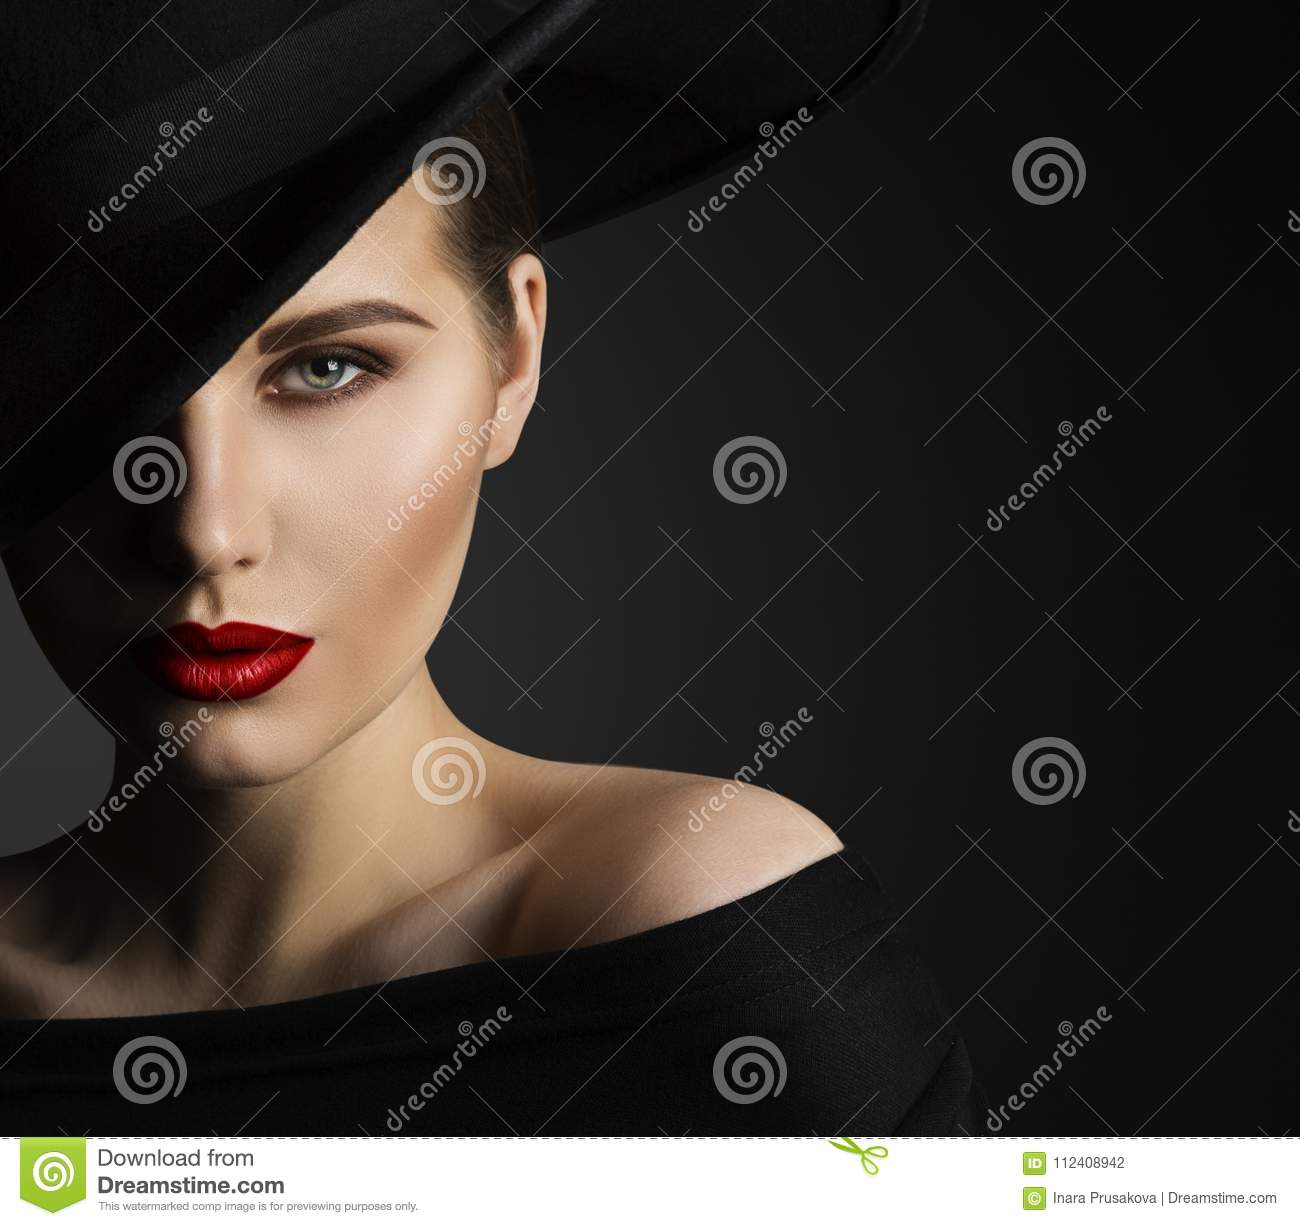 Fashion Model Beauty Portrait, Woman Beauty, Elegant Black Hat